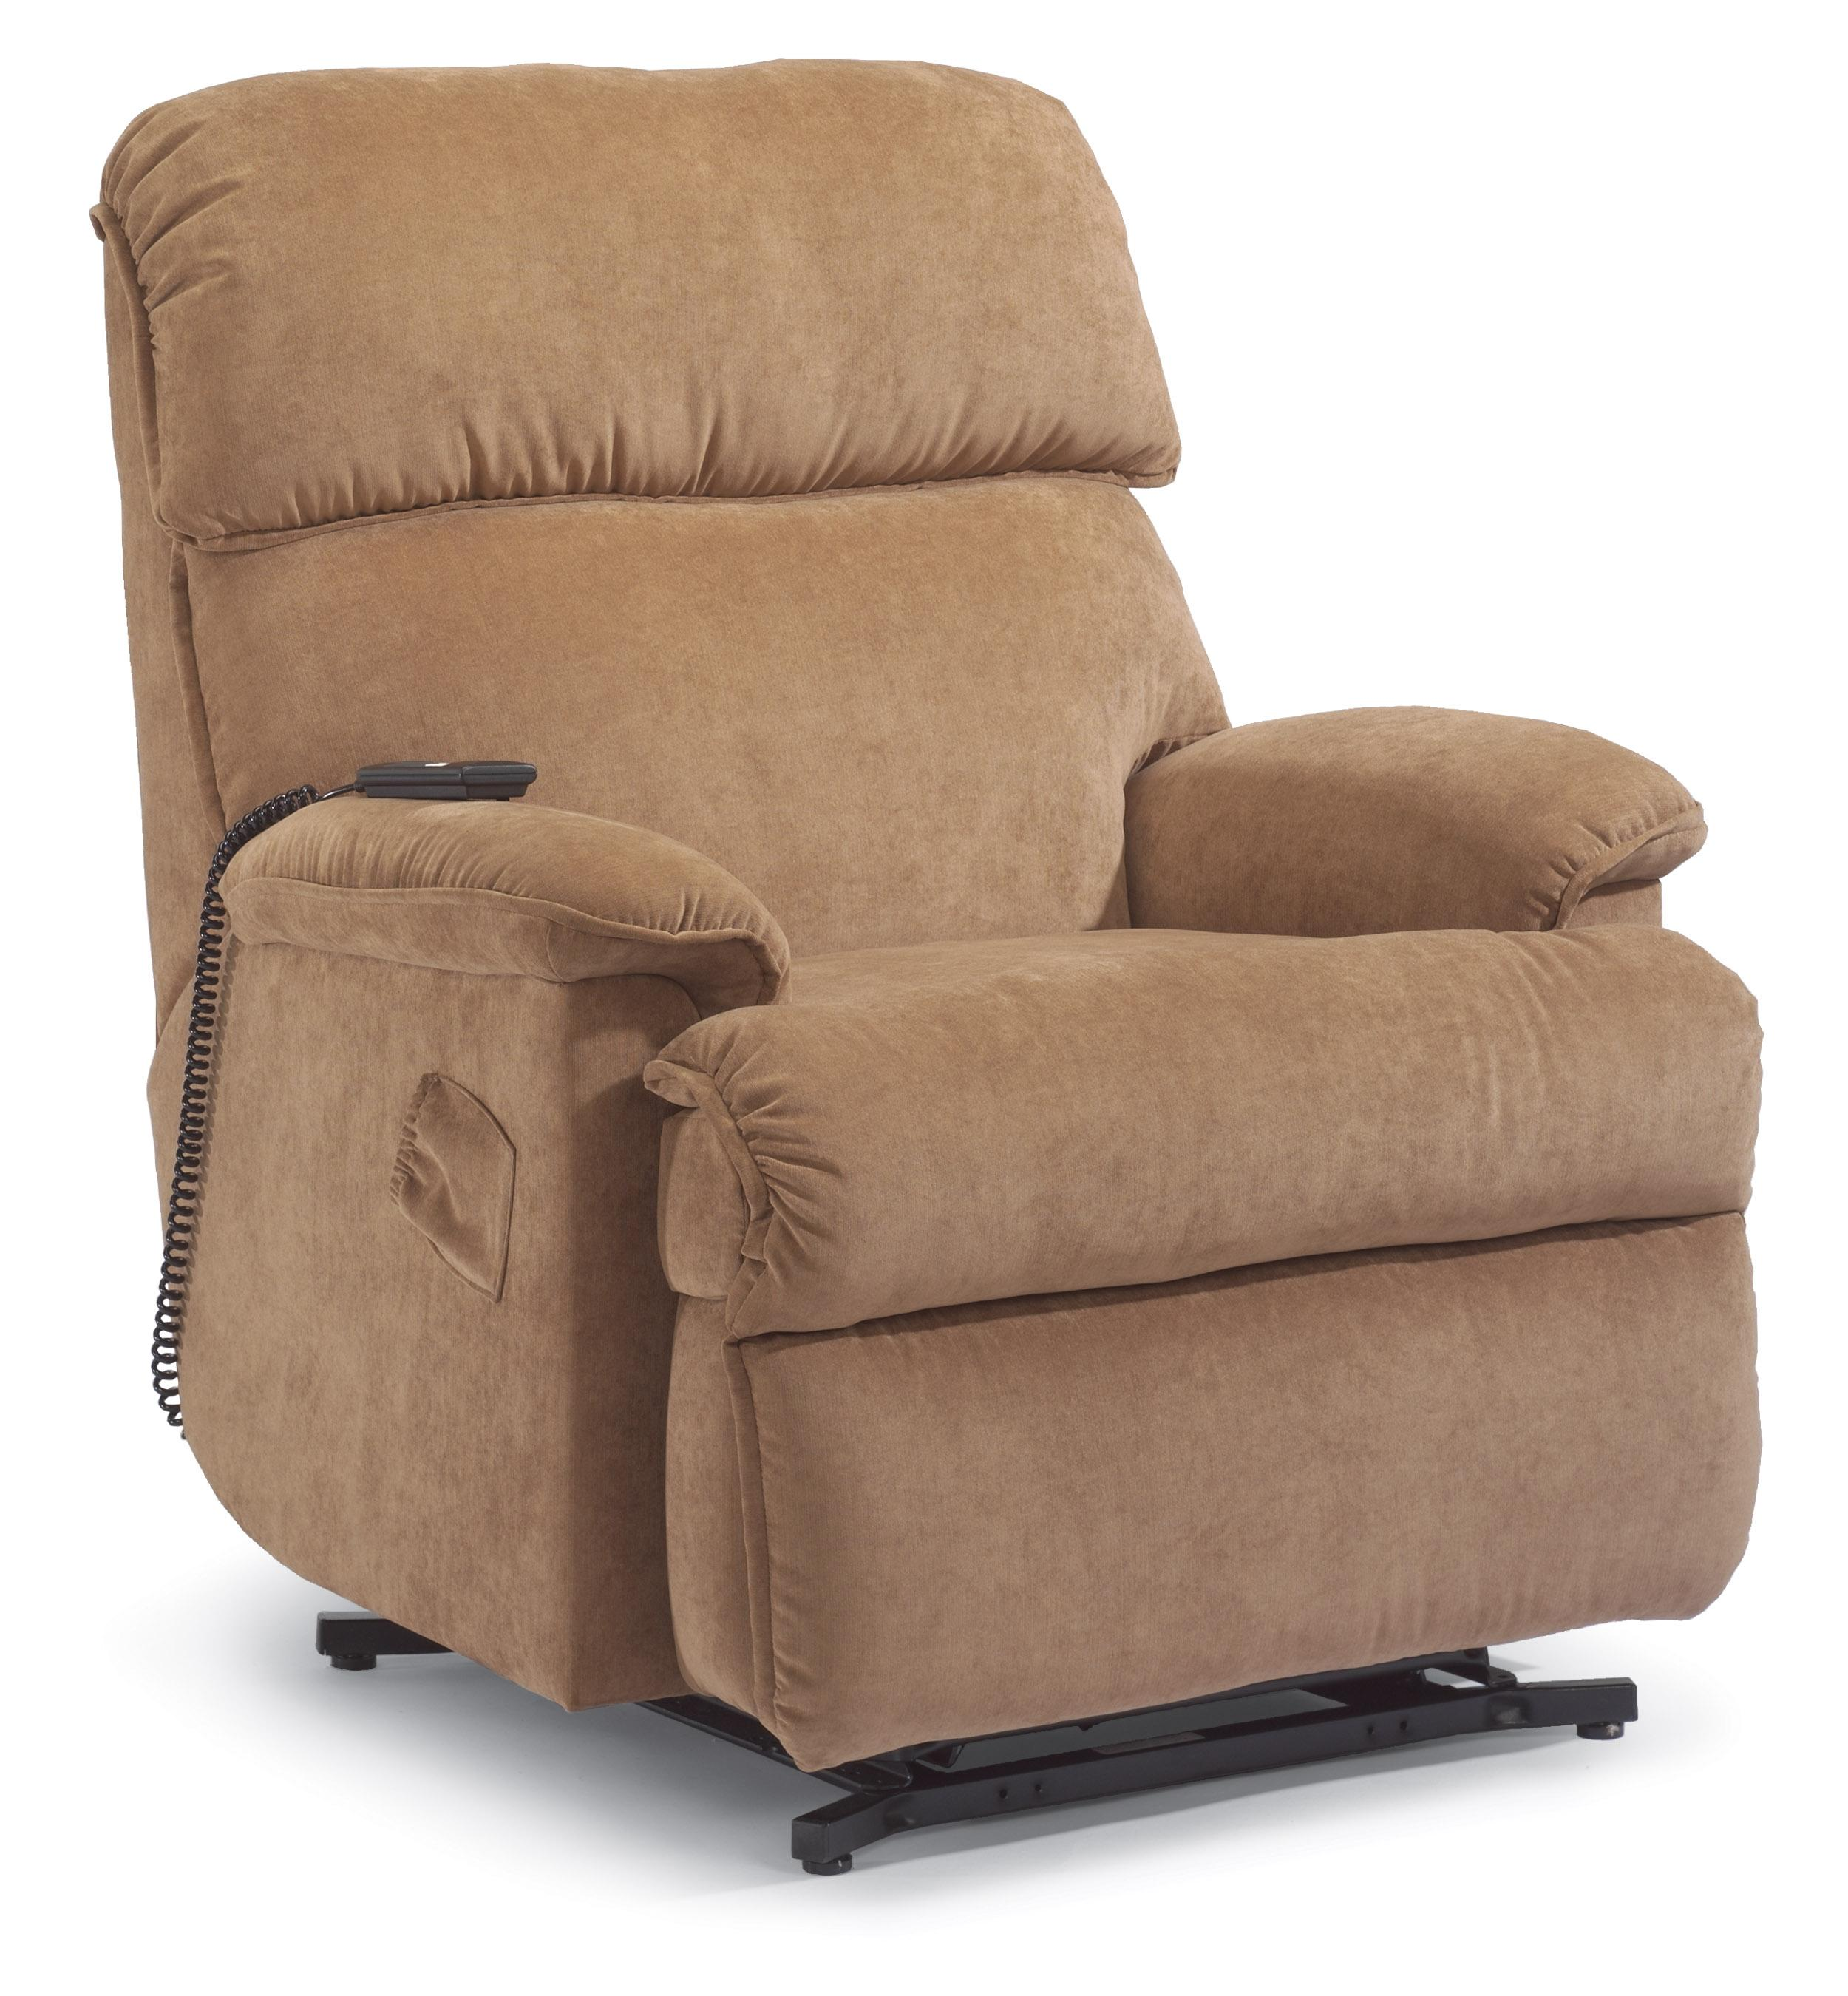 Accents Geneva Lift Recliner By Flexsteel